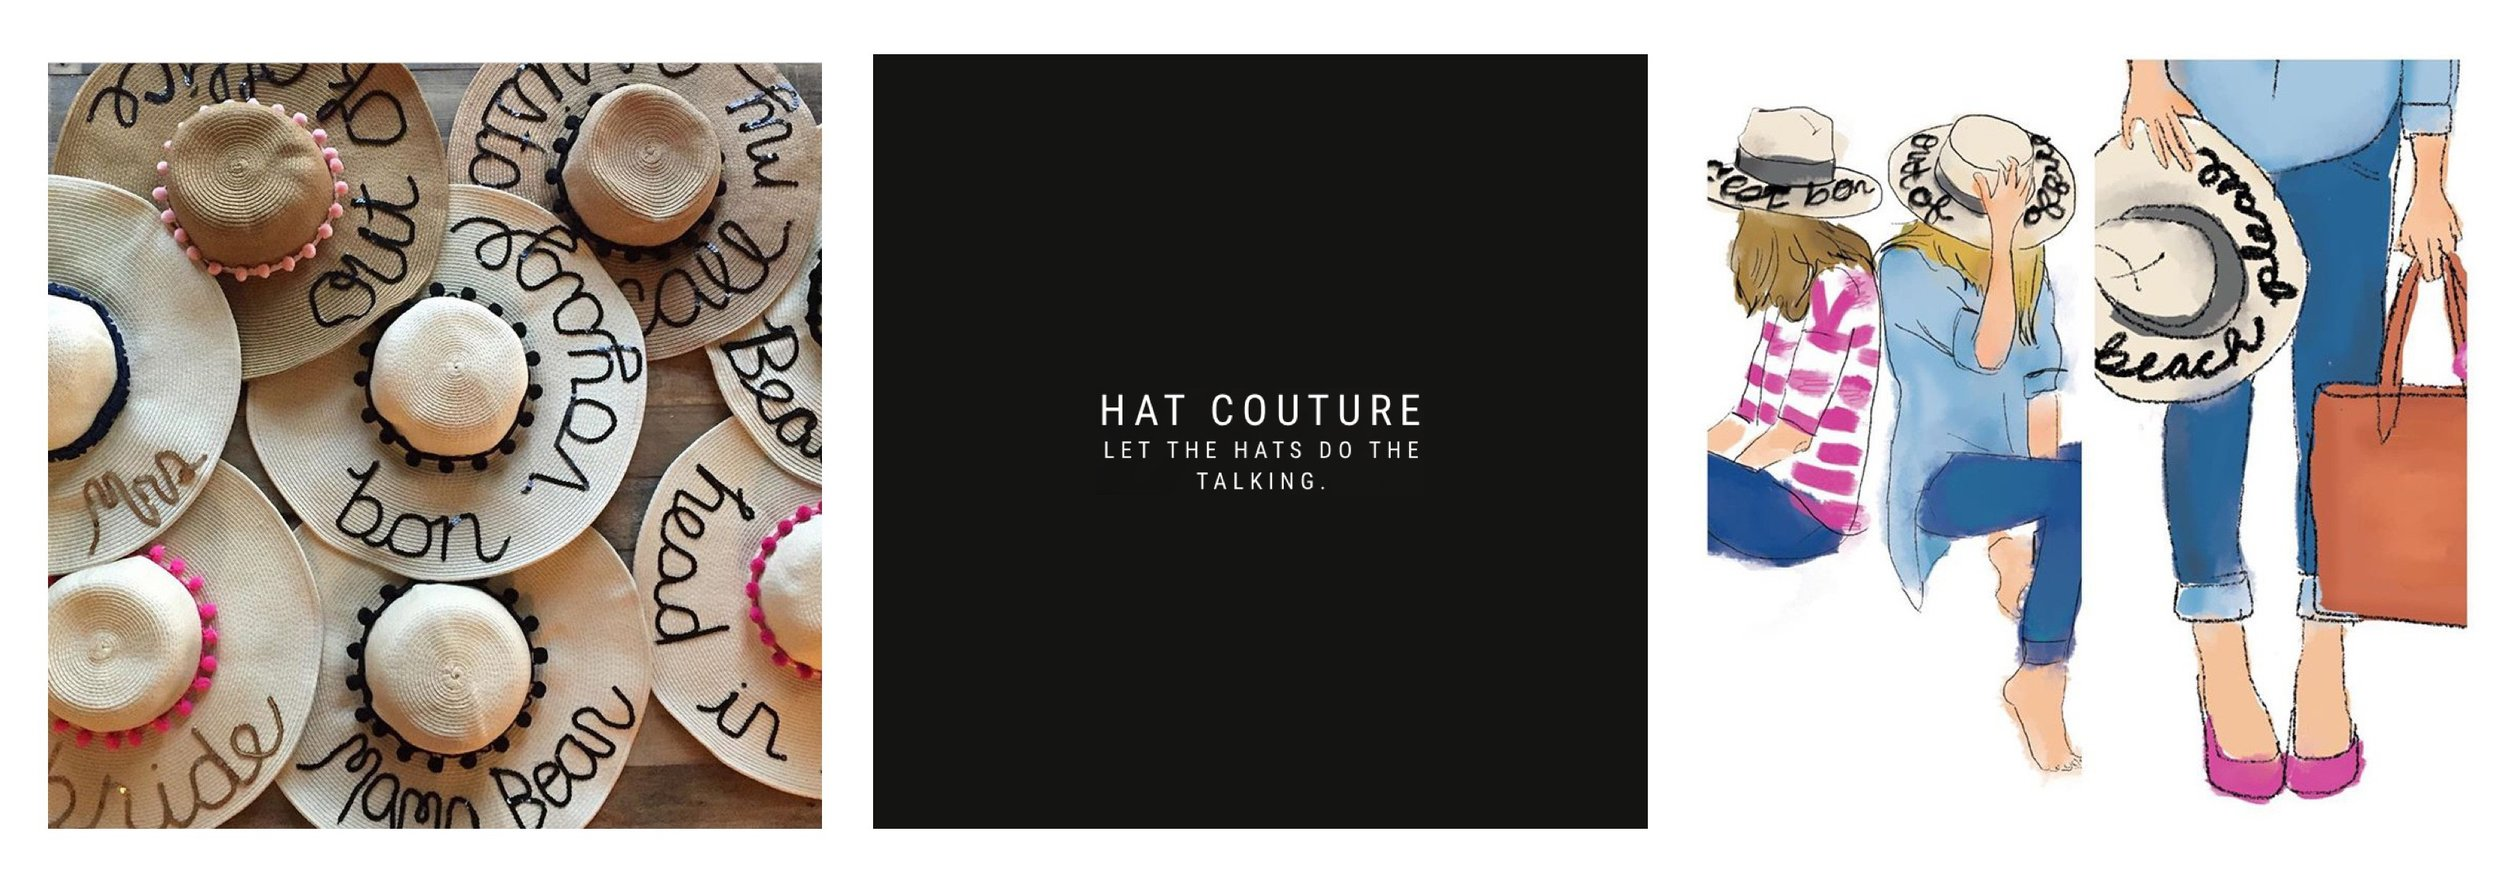 Save 15% on your pre-made or custom hat at ShopHatCouture.com with code CYBER16